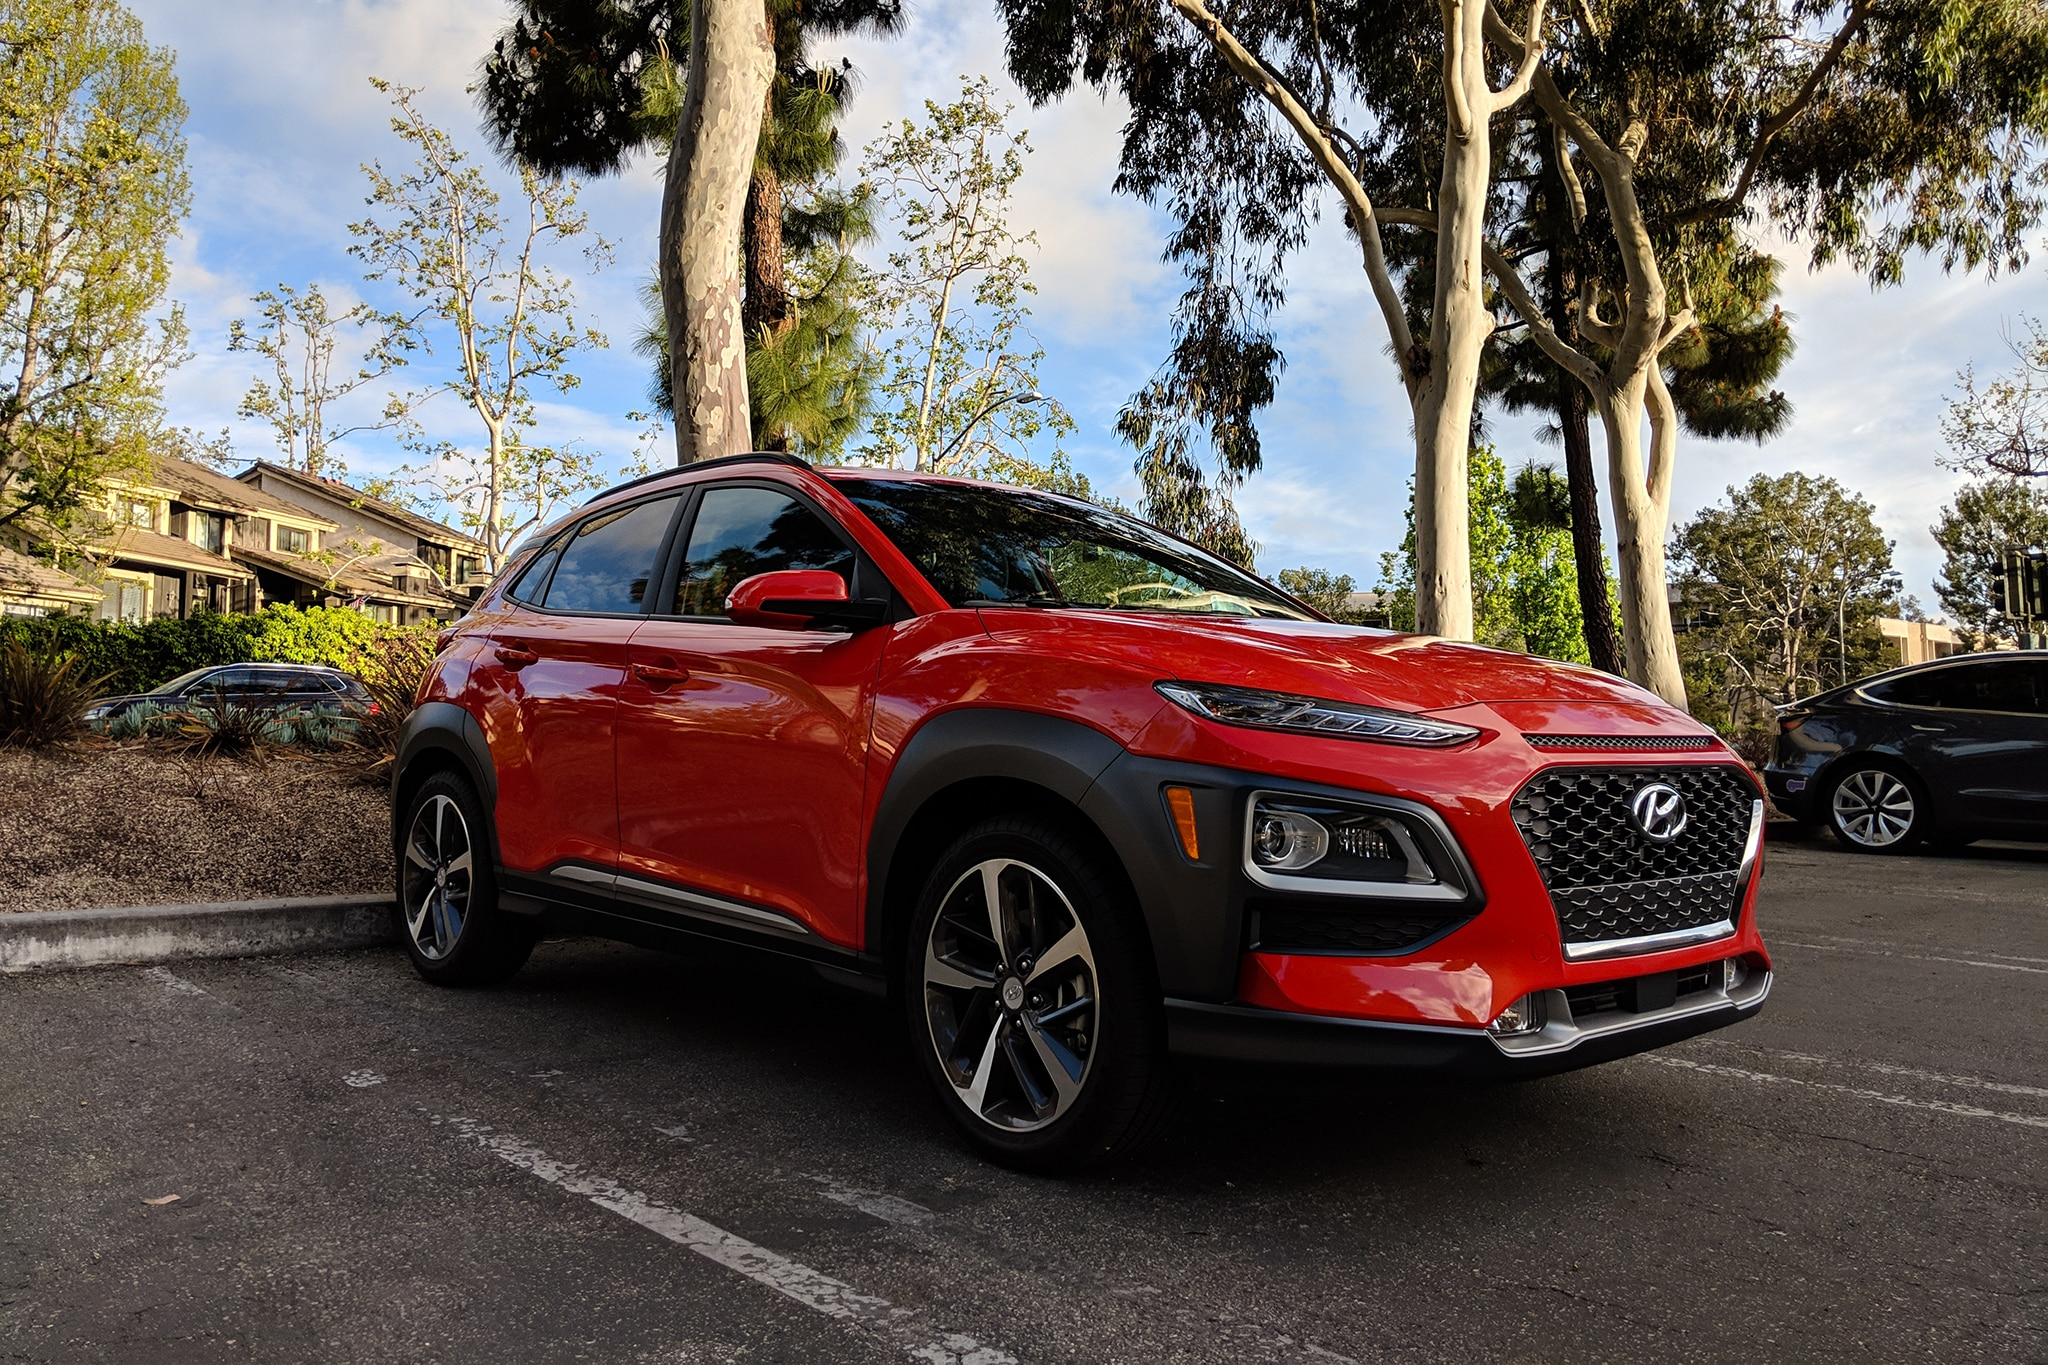 Best 8 Passenger Suv >> 2019 Hyundai Kona Ultimate Review: A Hatchback in Disguise ...